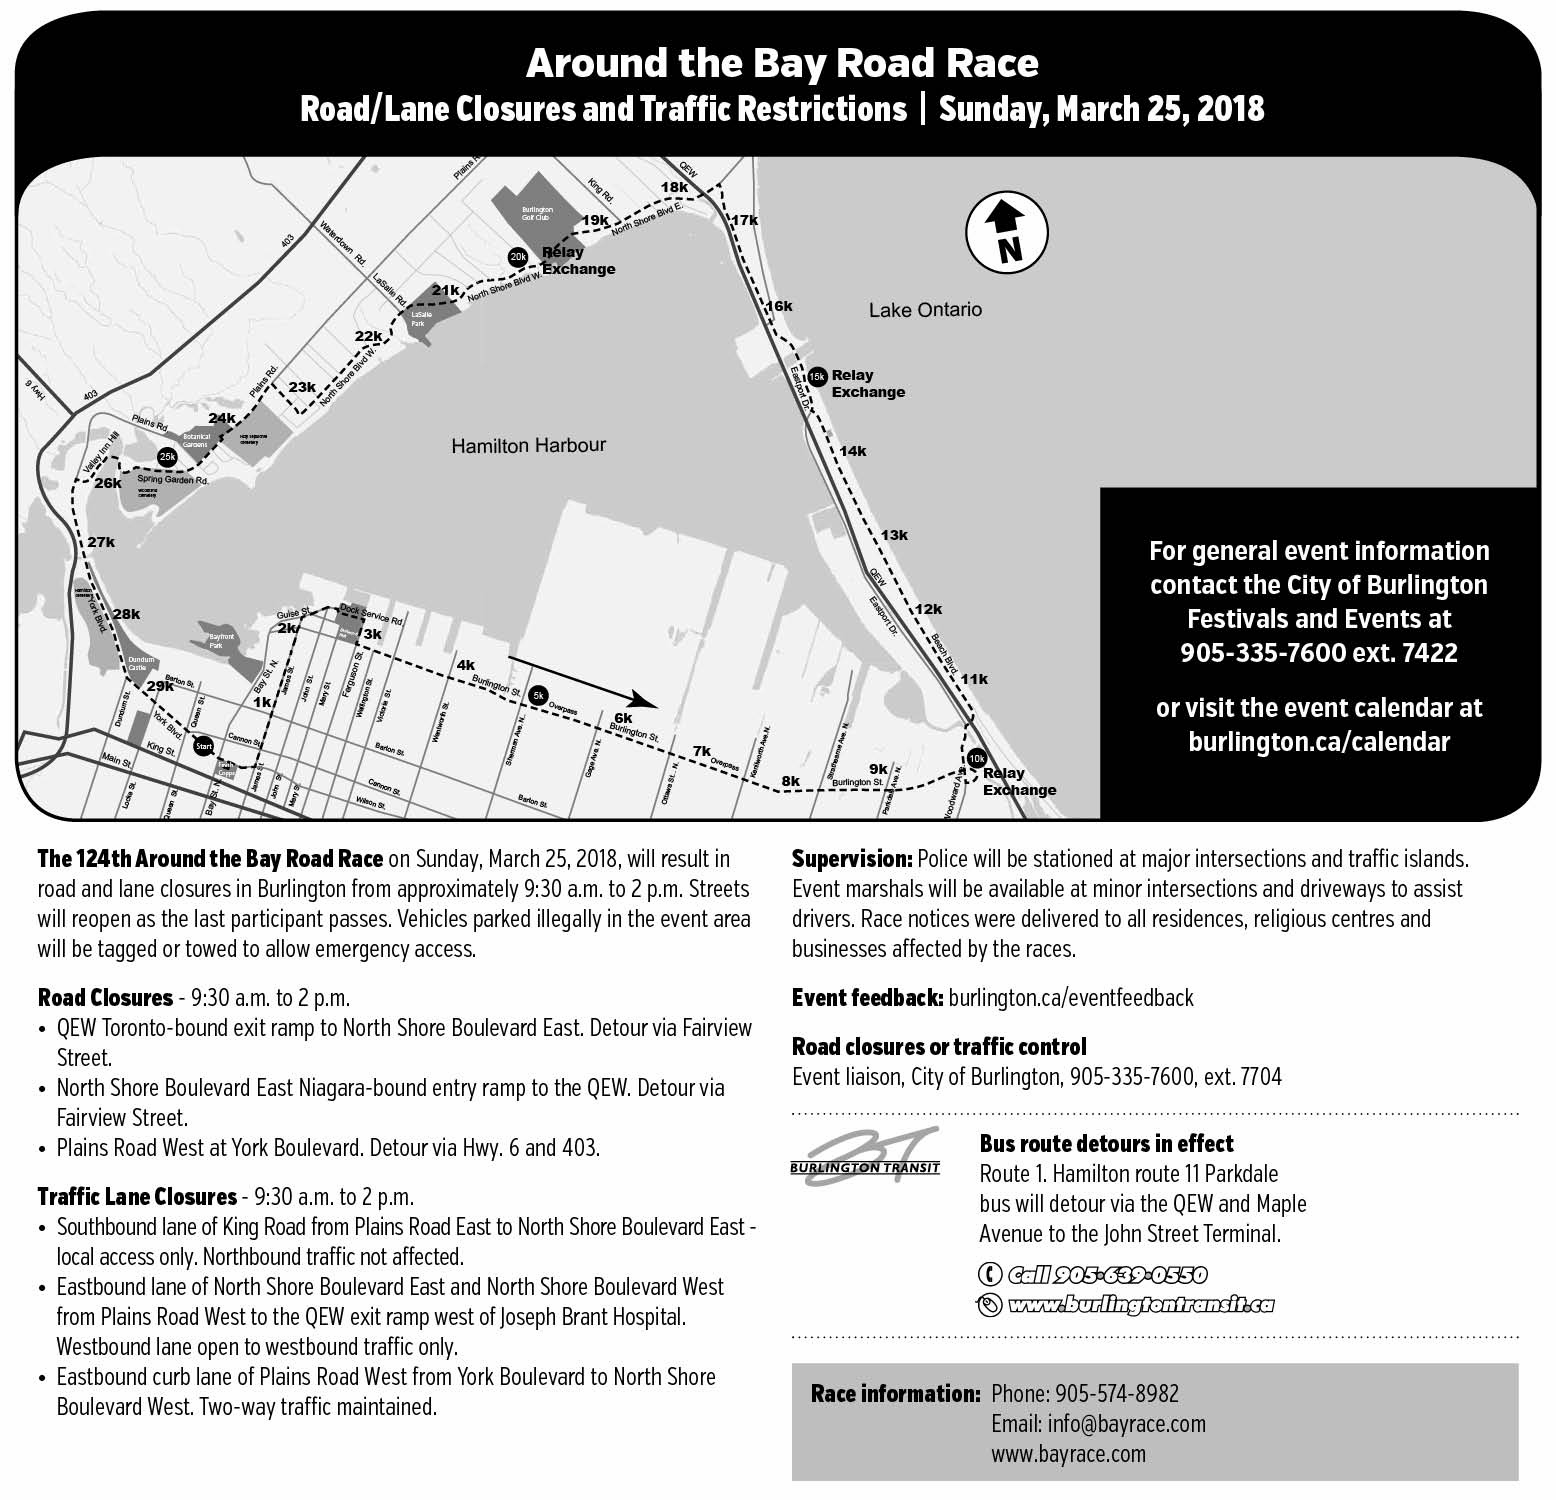 Map and Details of Around the Bay Closure